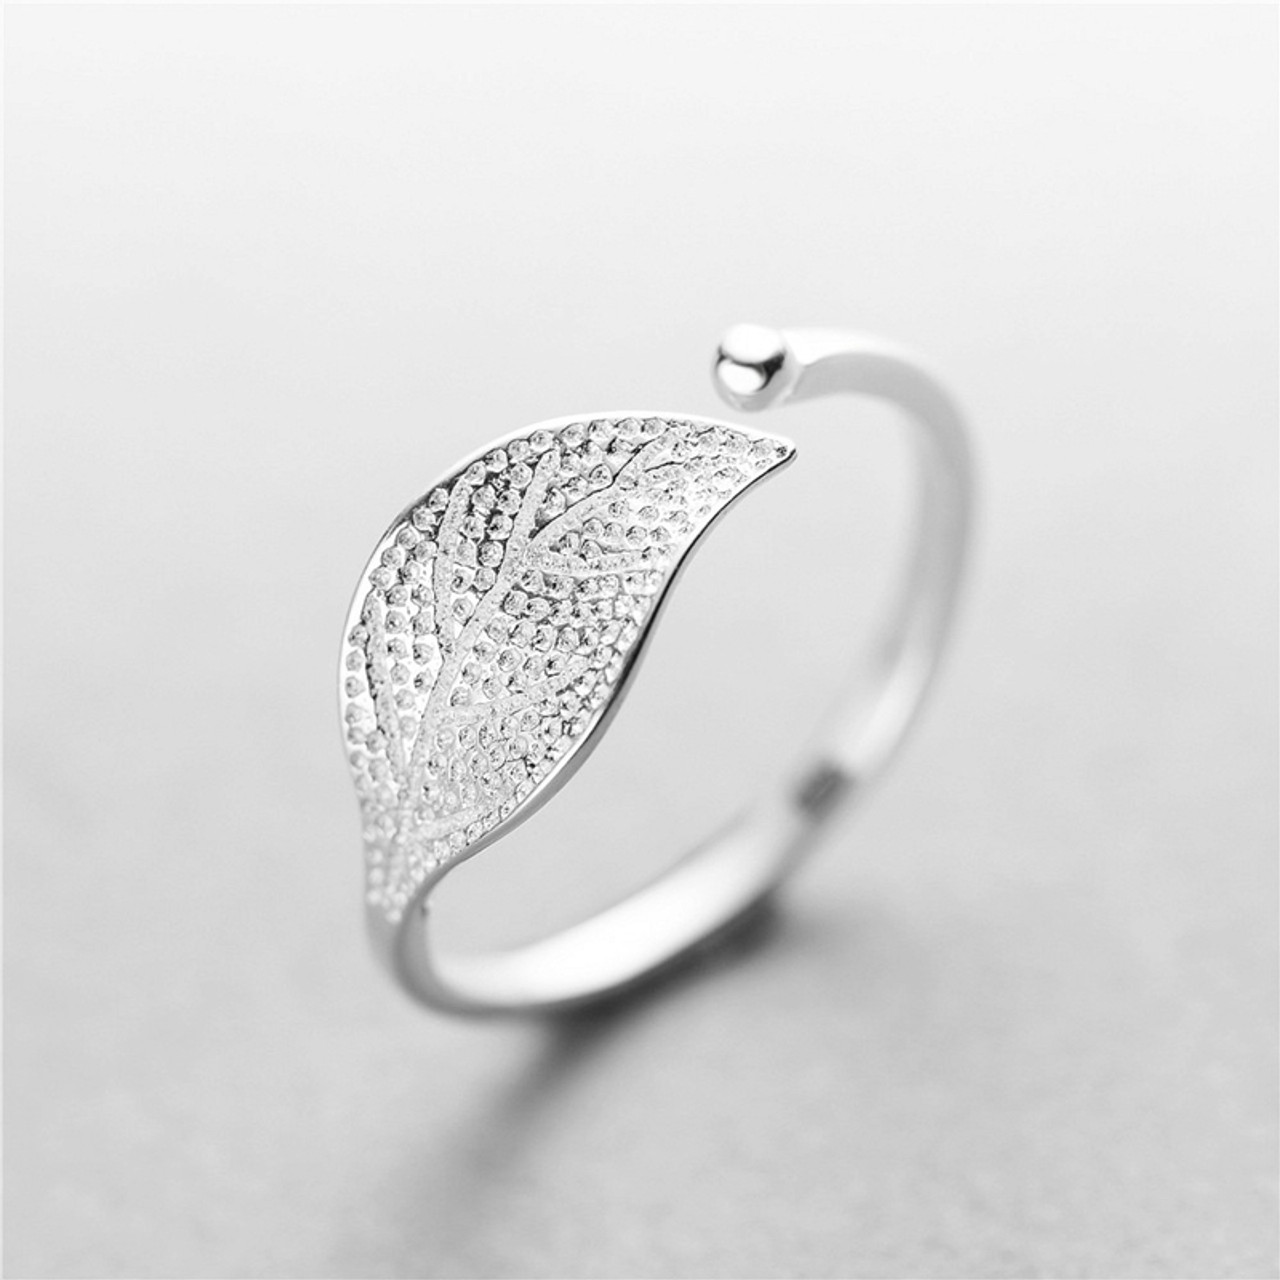 diamond vintage art antiqueart platinum engagement antique leaves nouveauvintage ring leaf nouveau media rings large no